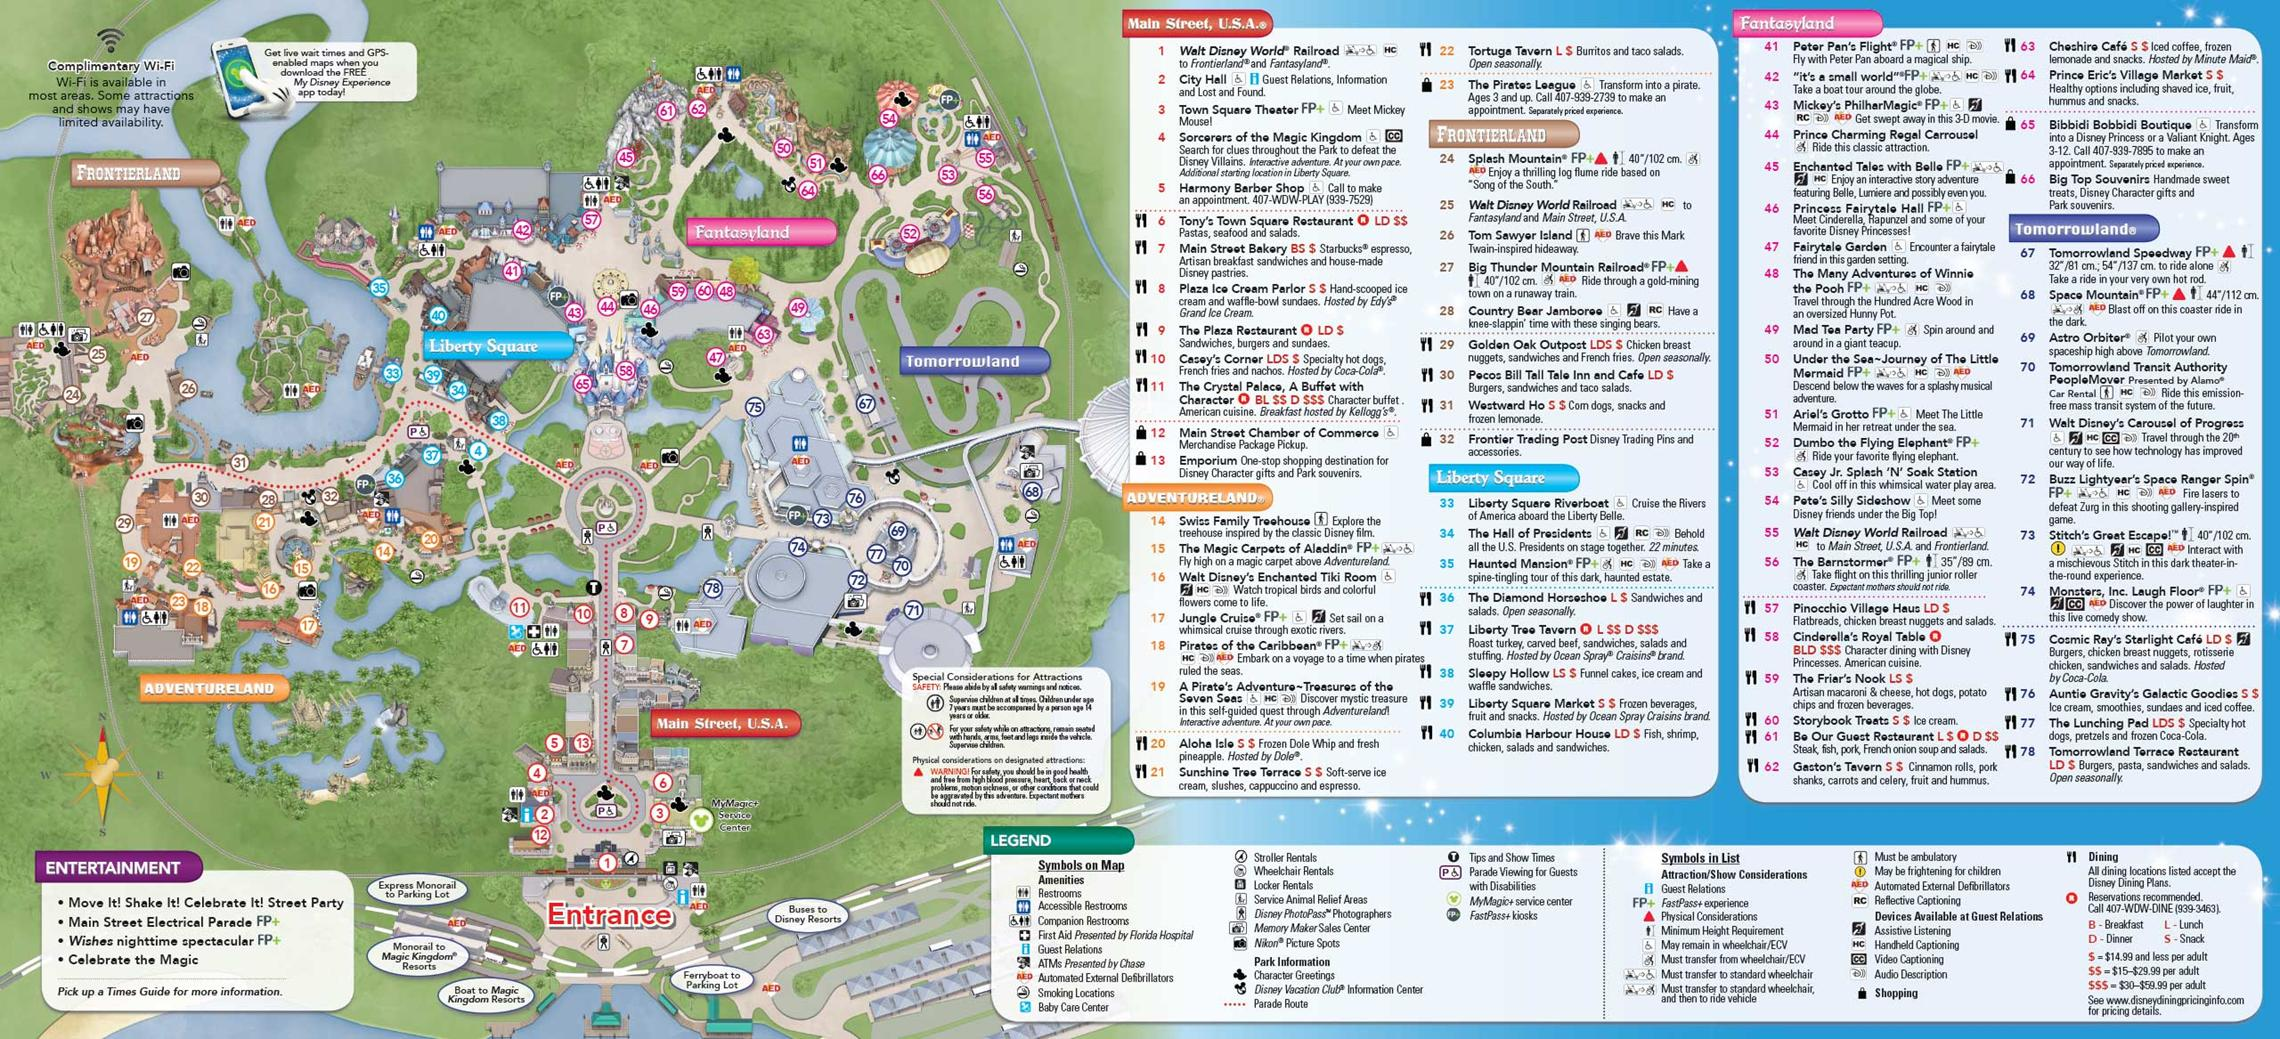 2014 Magic Kingdom guide map with FastPass+ details